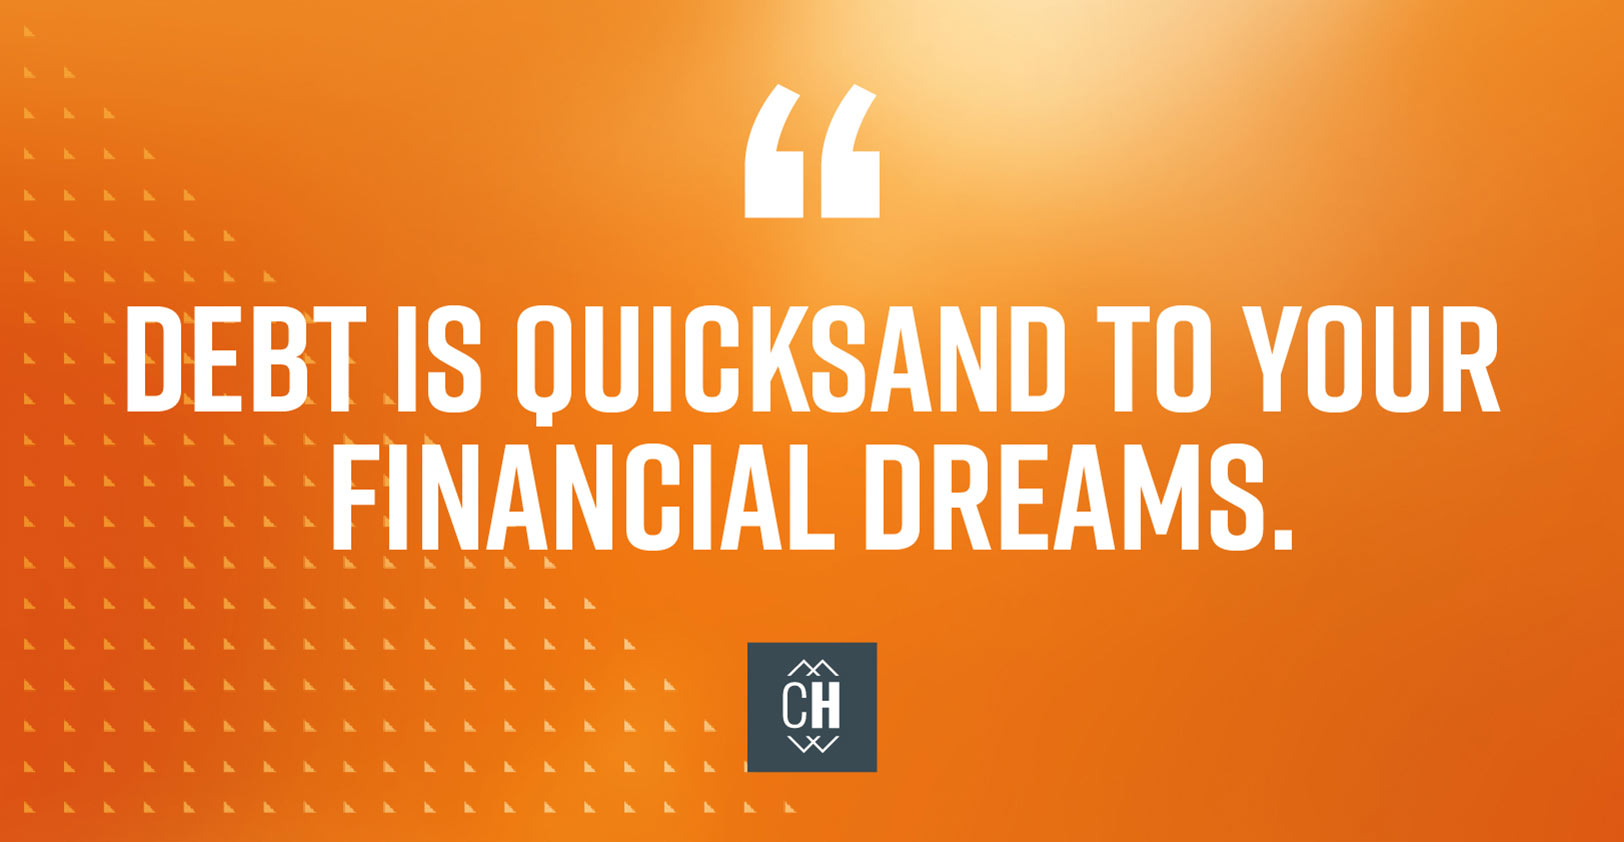 Debt is quicksand to your financial dreams